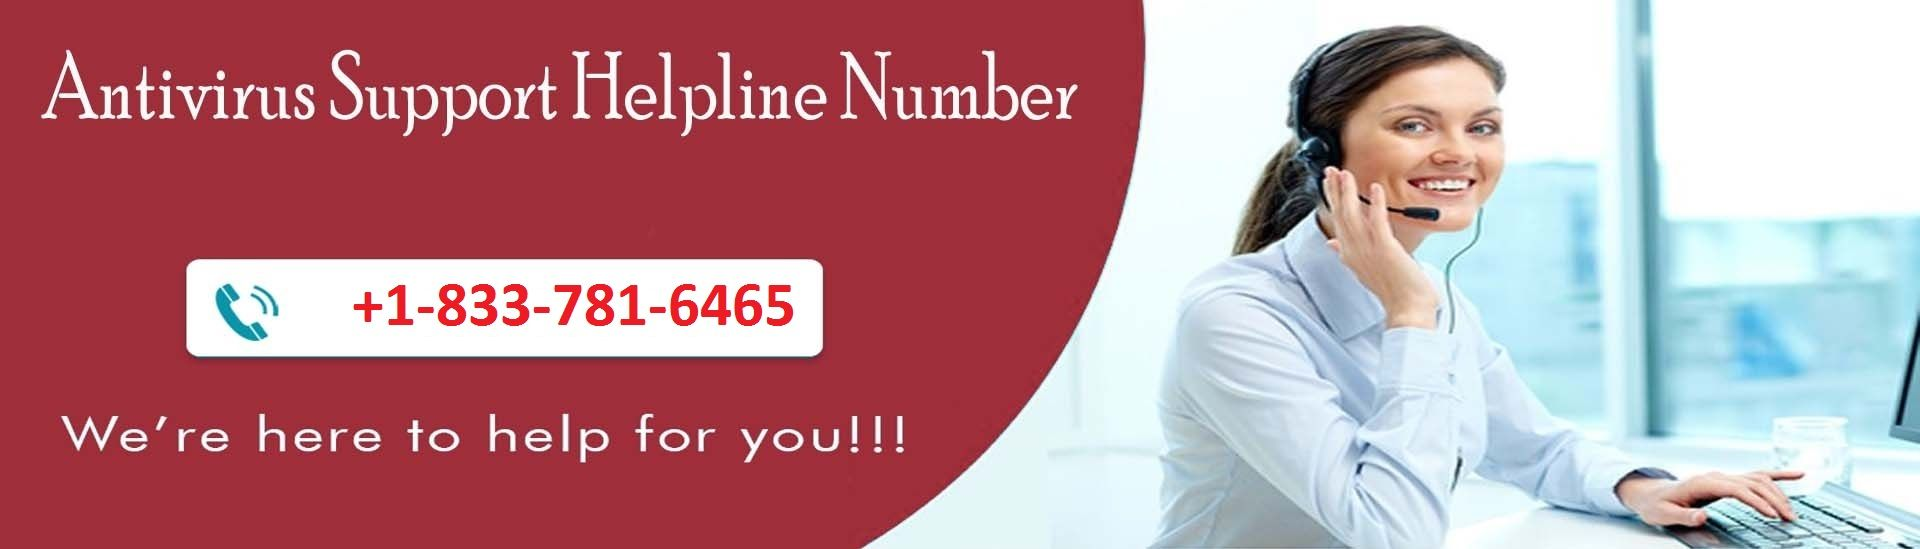 Dial tollfree phone number in order to get instant